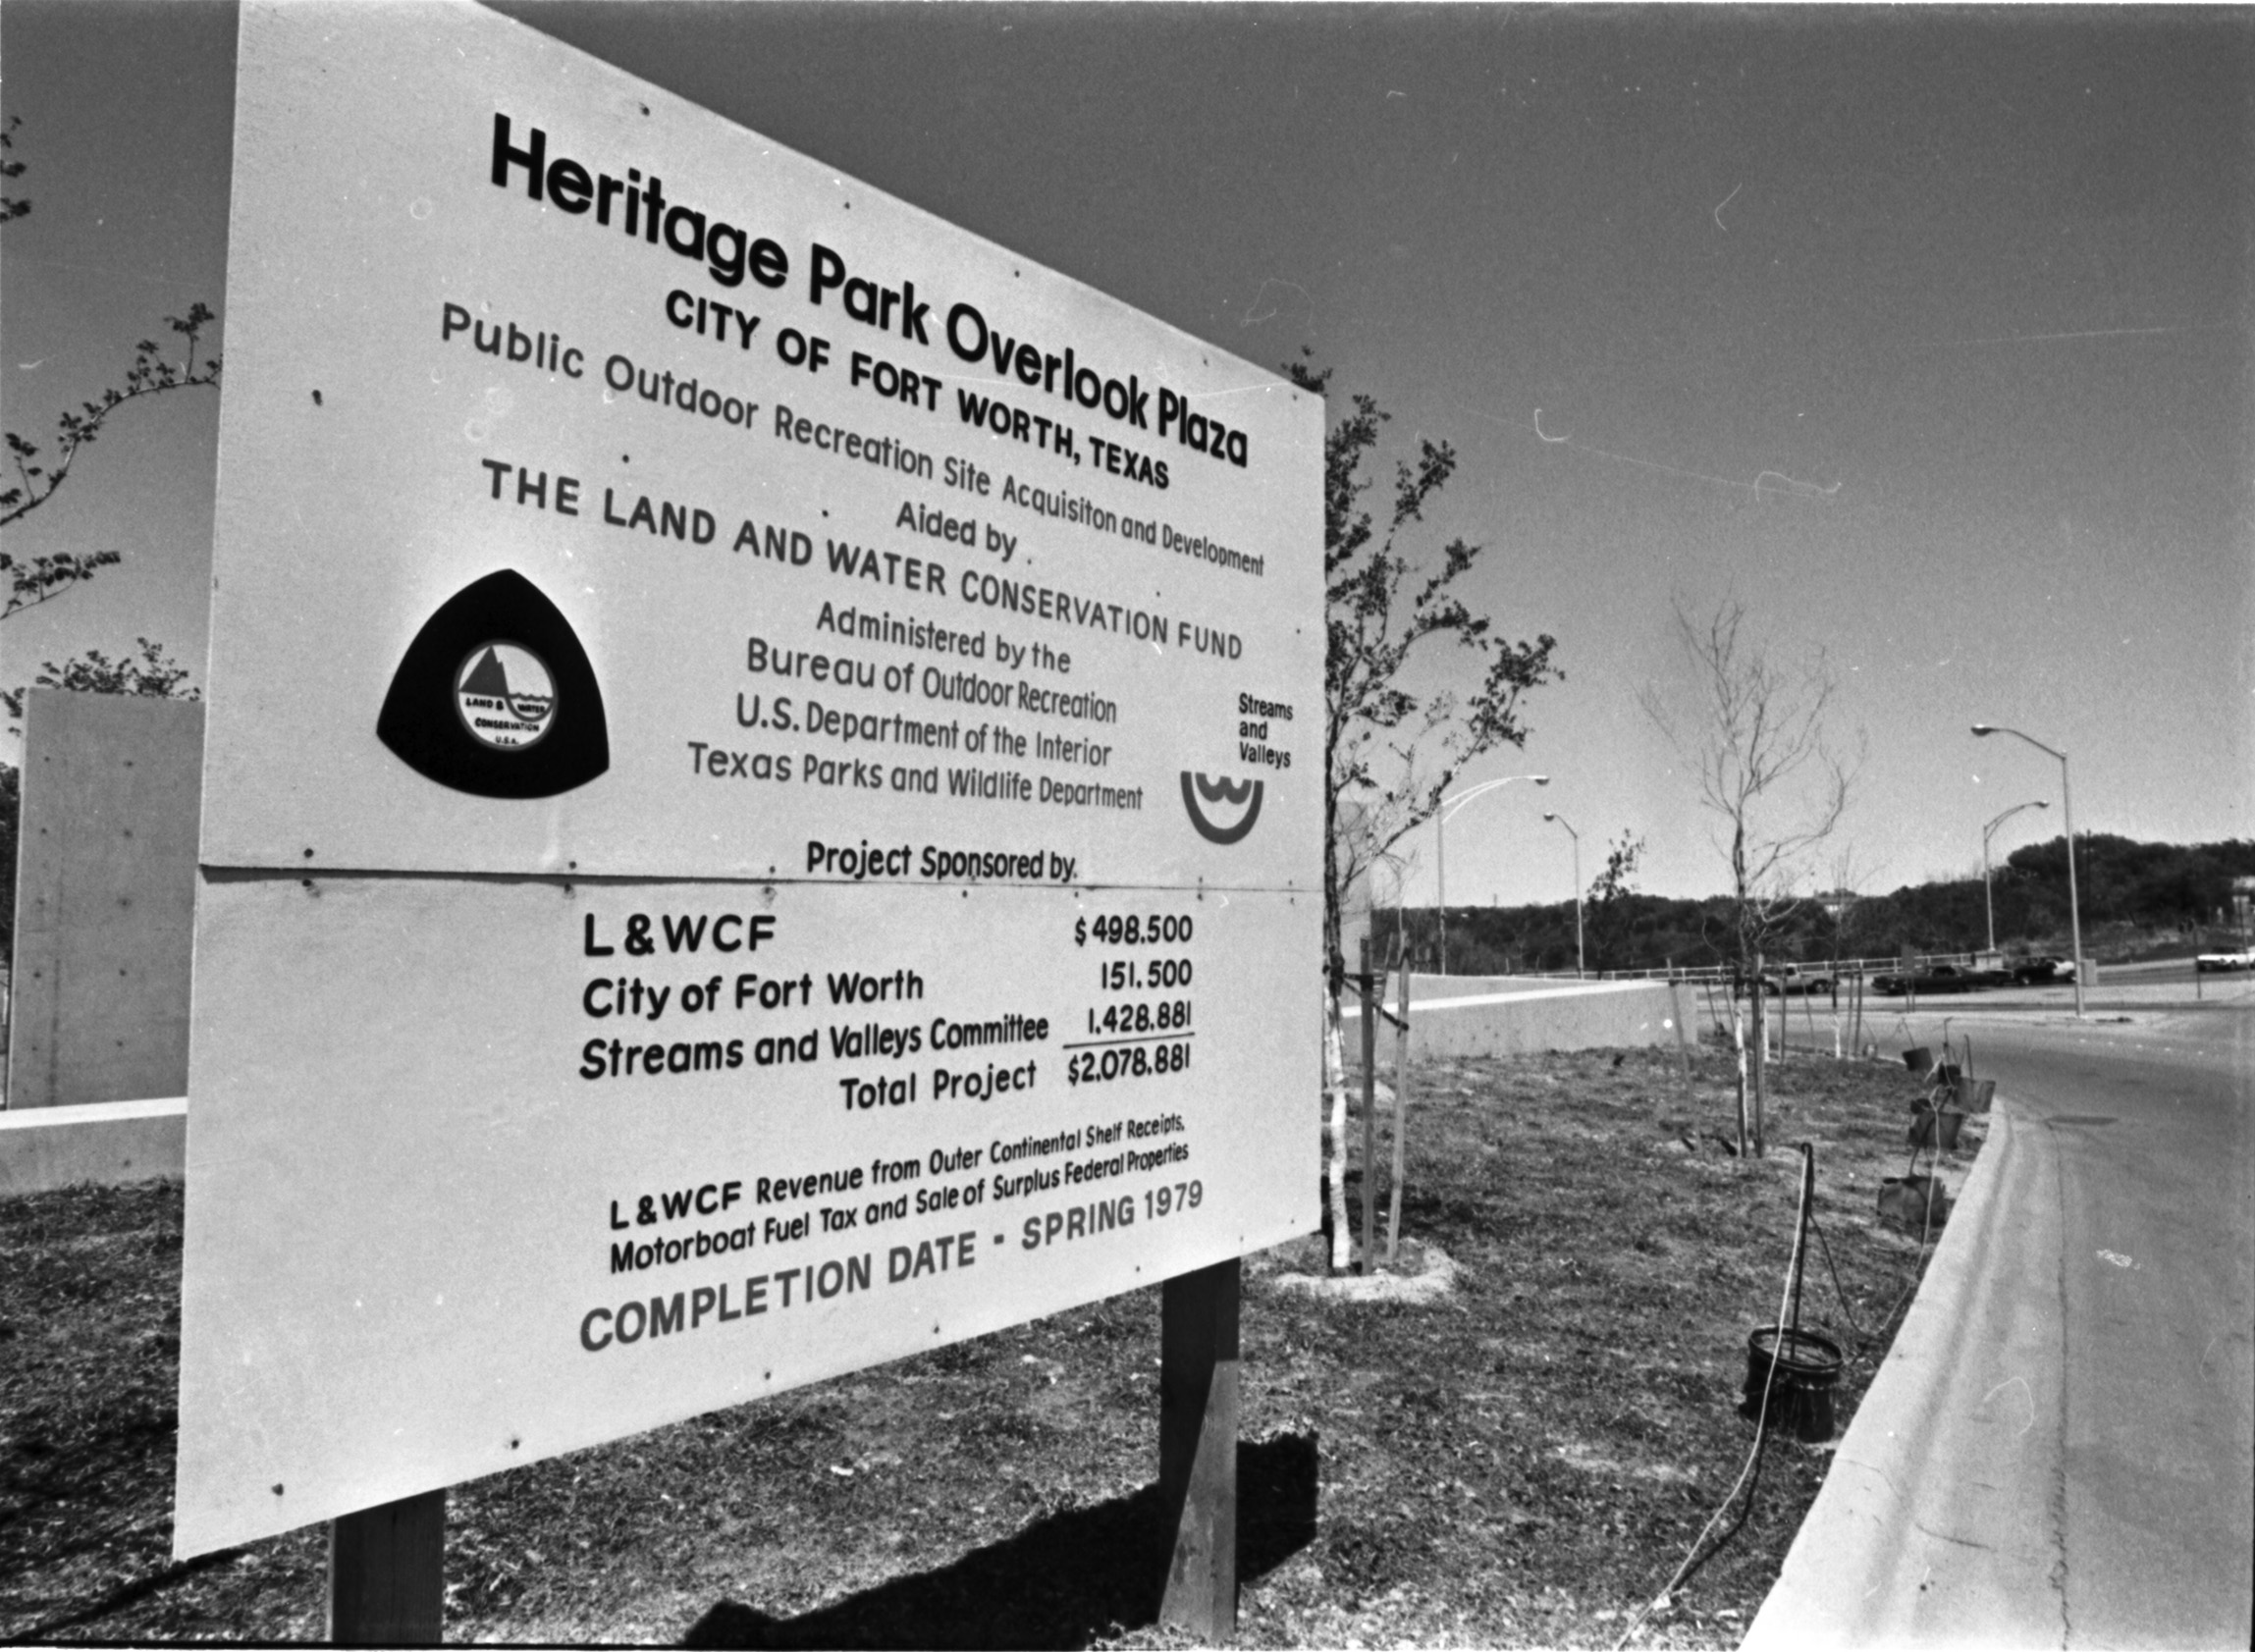 Dedication Of Heritage Park At Confluence Of Clear Fork And West